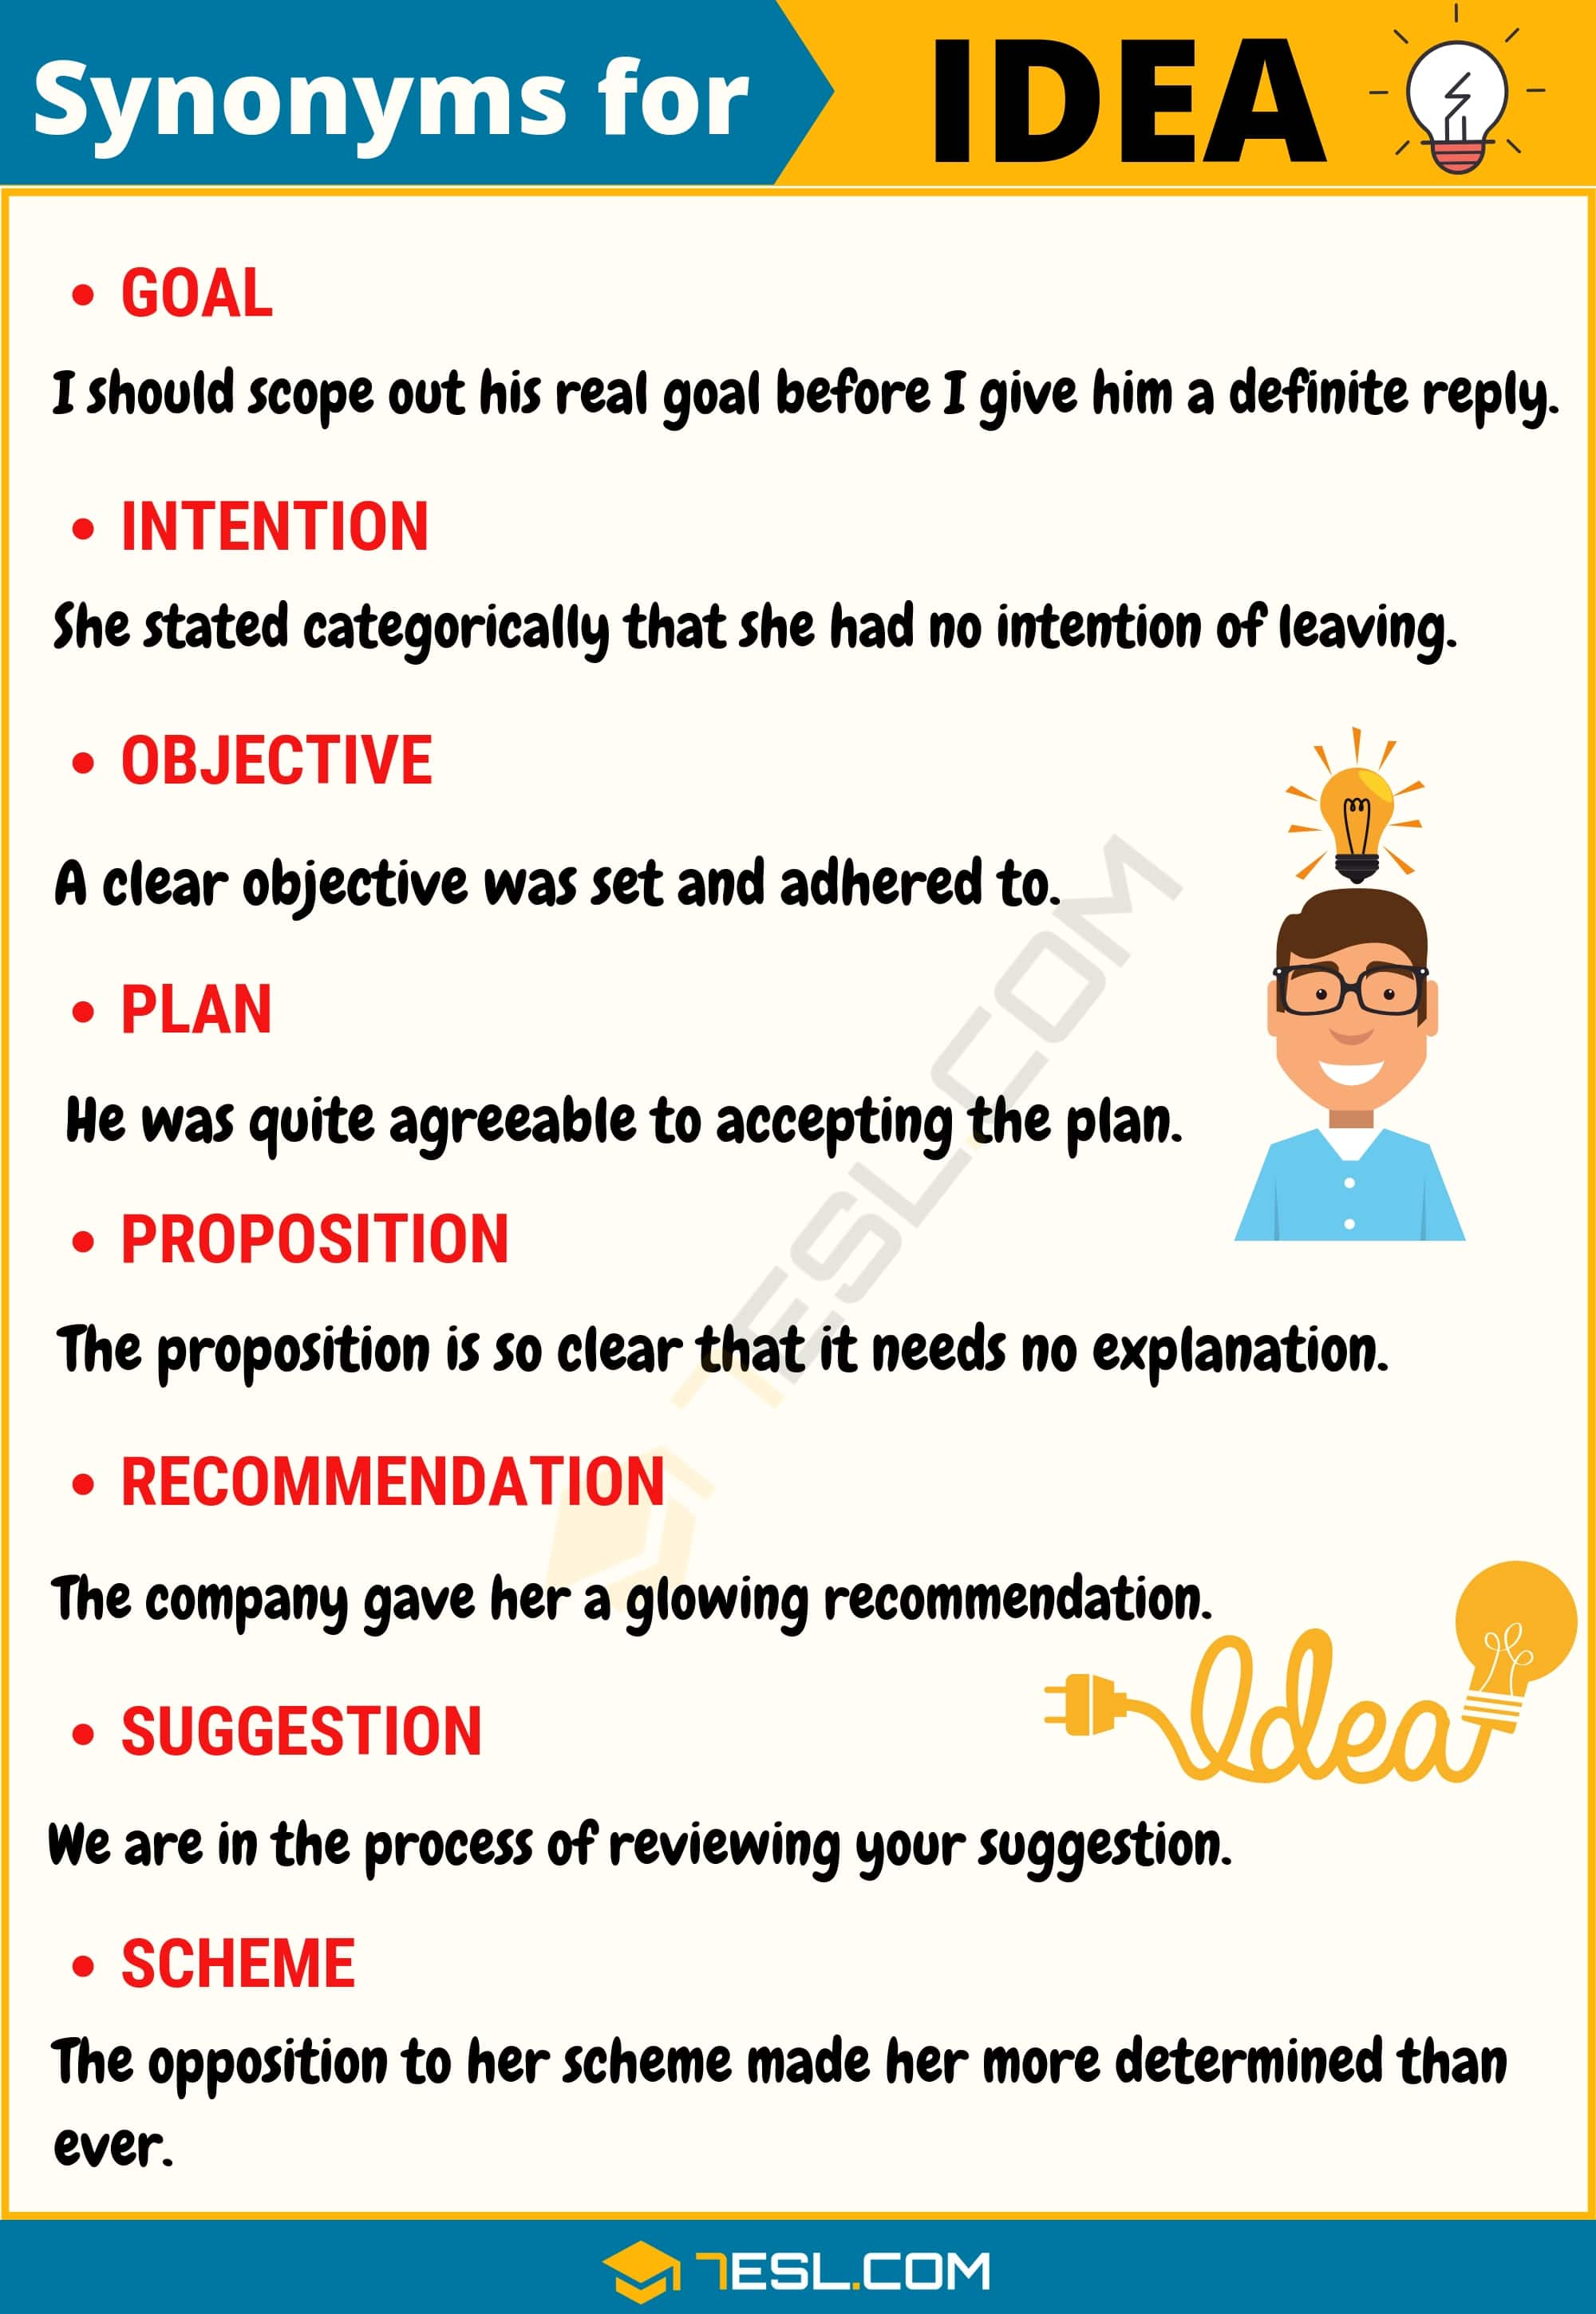 Idea Synonym List Of 100 Synonyms For Idea With Useful